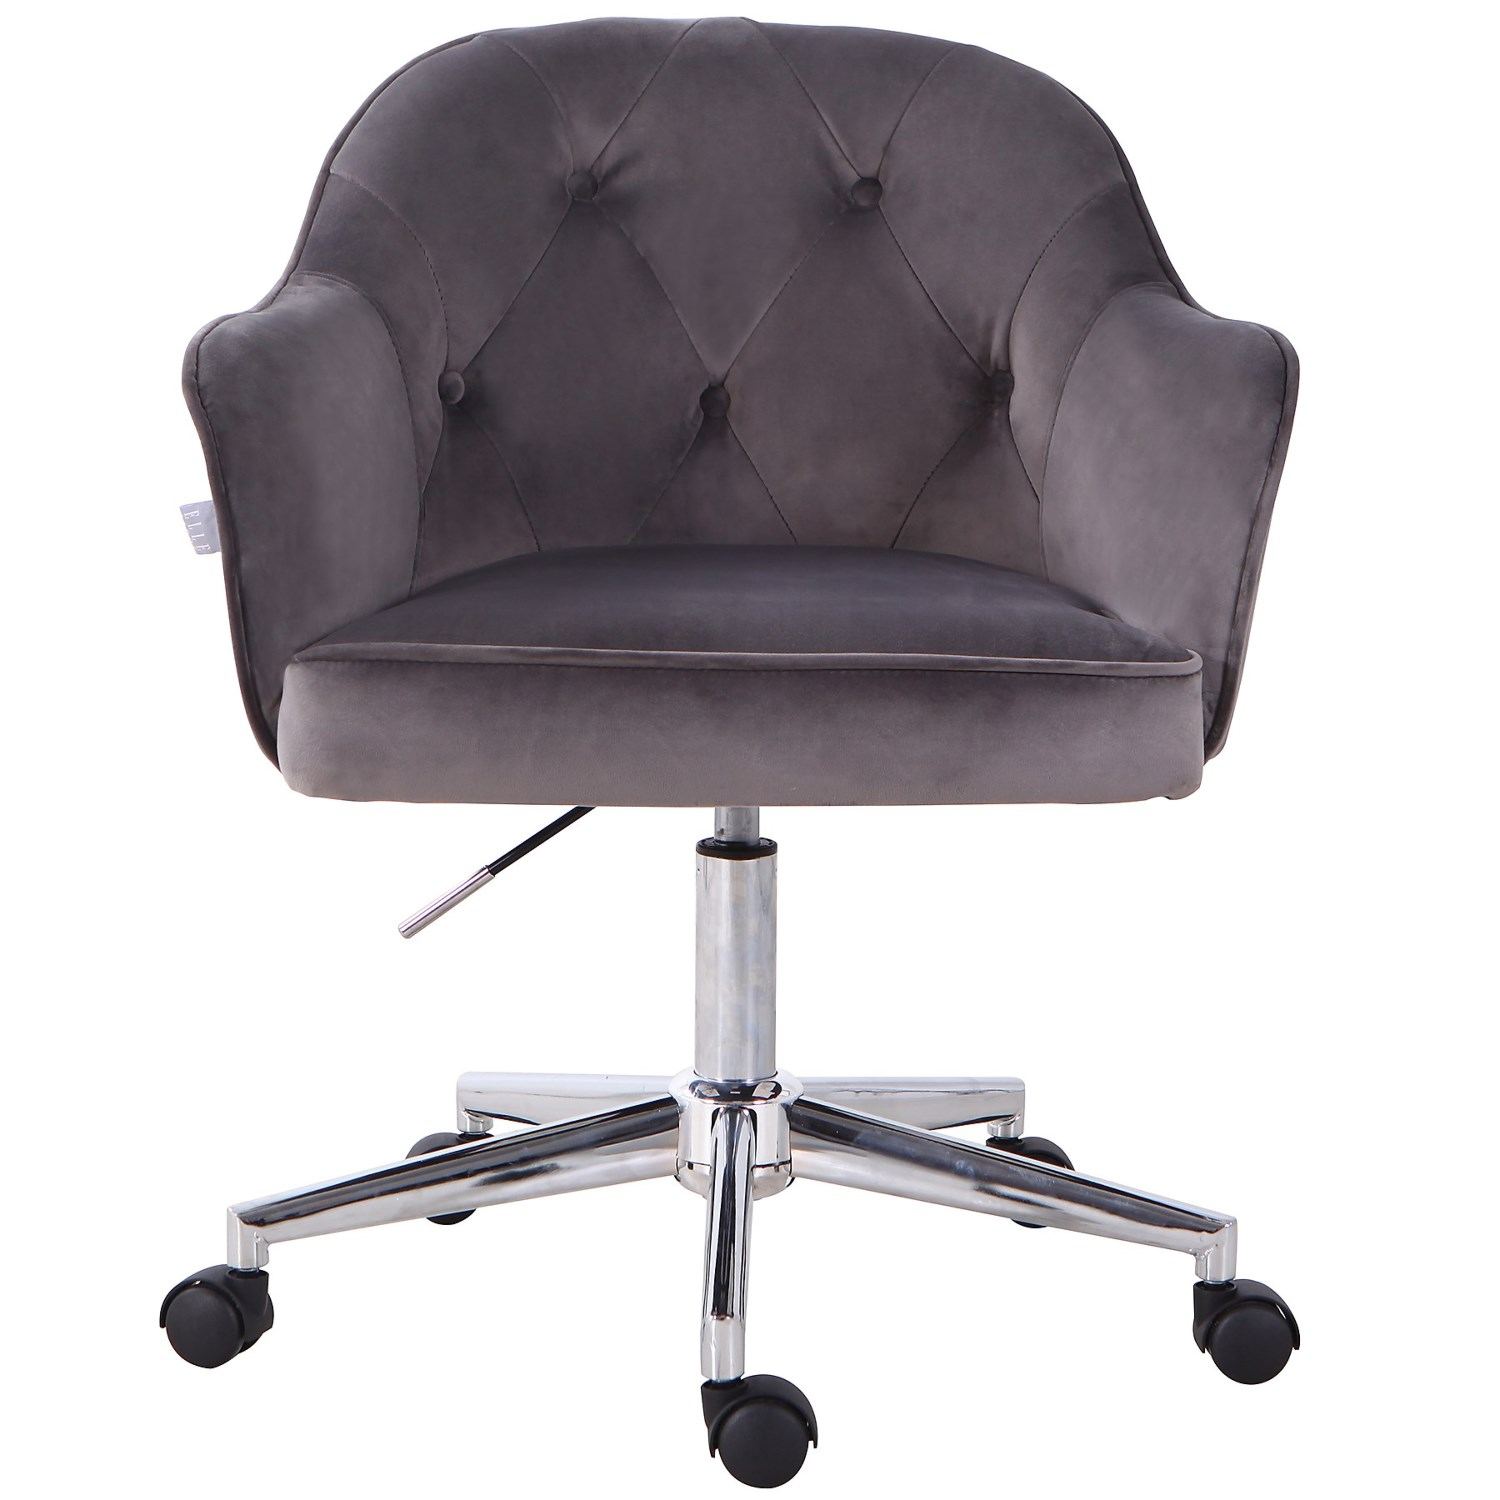 Pleasant Elle Decor Tufted Office Chair 23 5X23X30 75 Ibusinesslaw Wood Chair Design Ideas Ibusinesslaworg